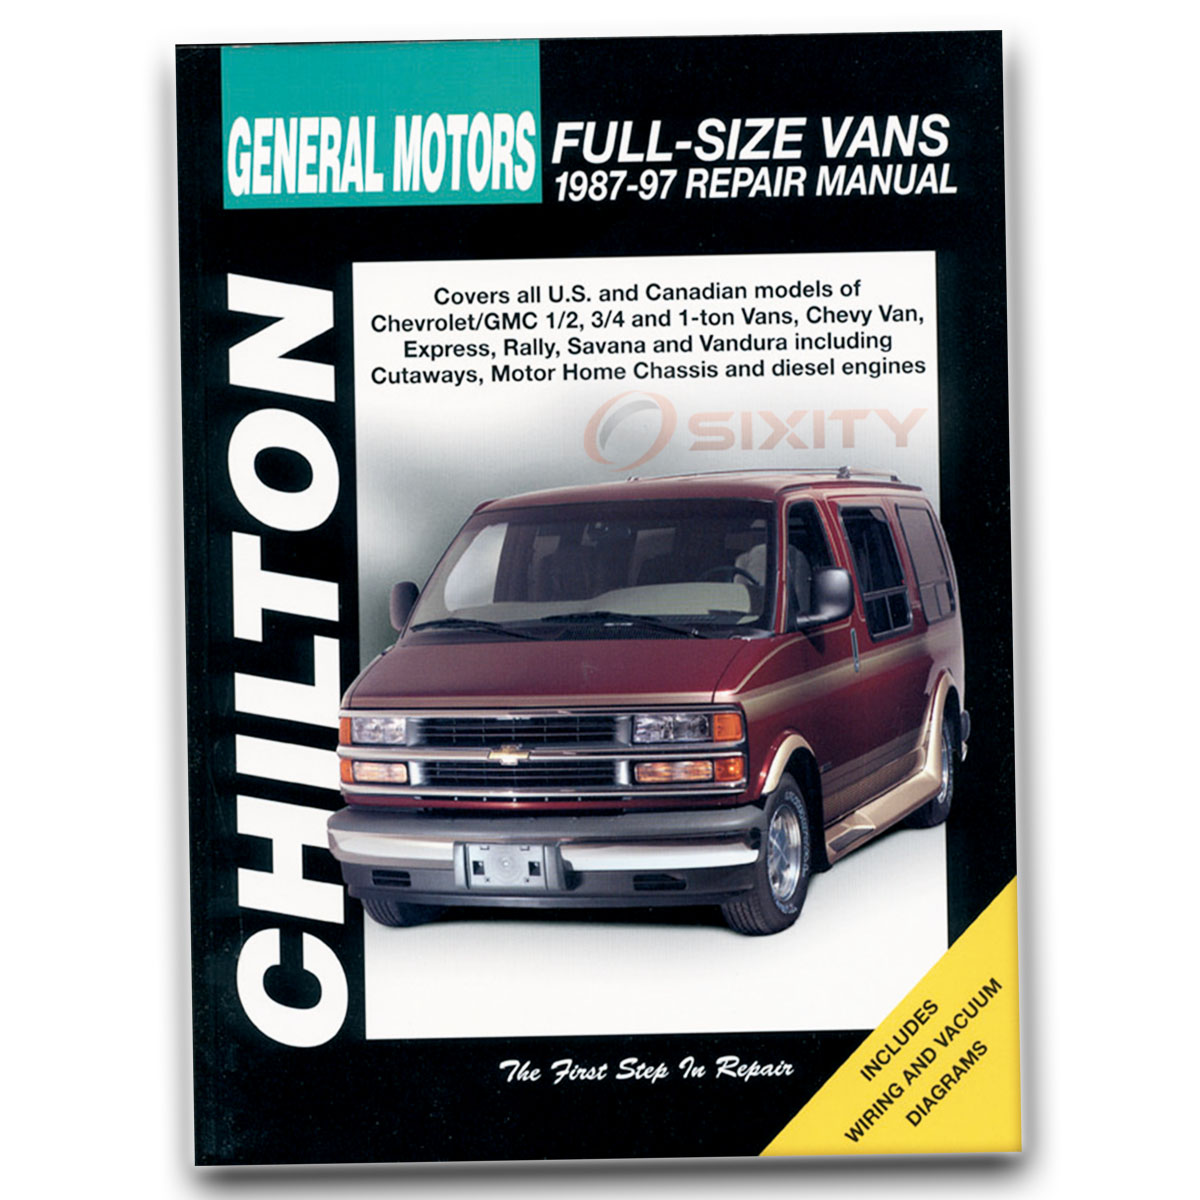 Chilton Repair Manual For 1987 1997 Chevrolet P30 Shop Service